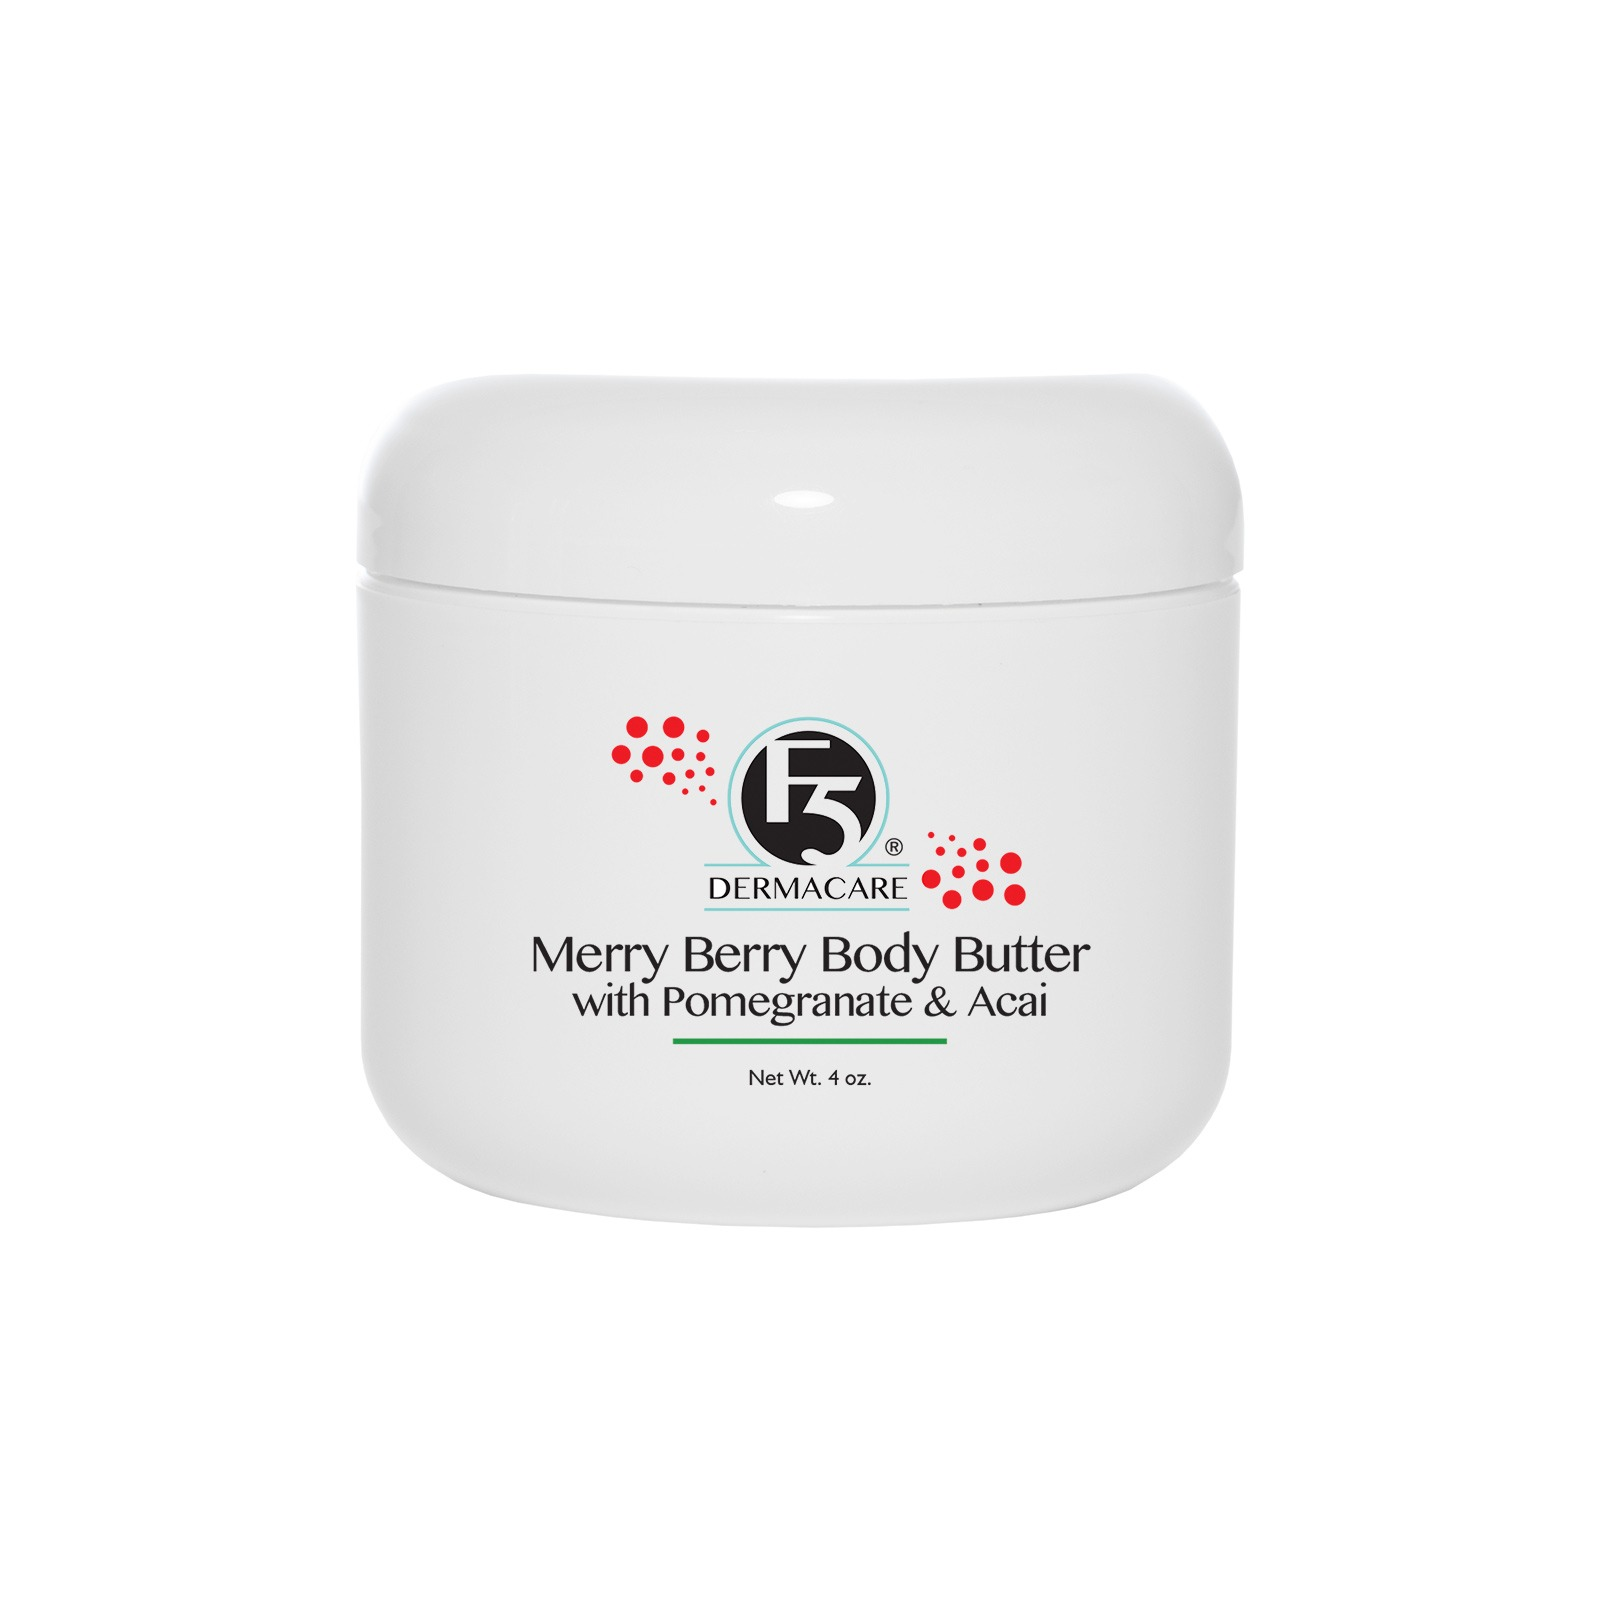 Merry Berry Body Butter - Limited Edition